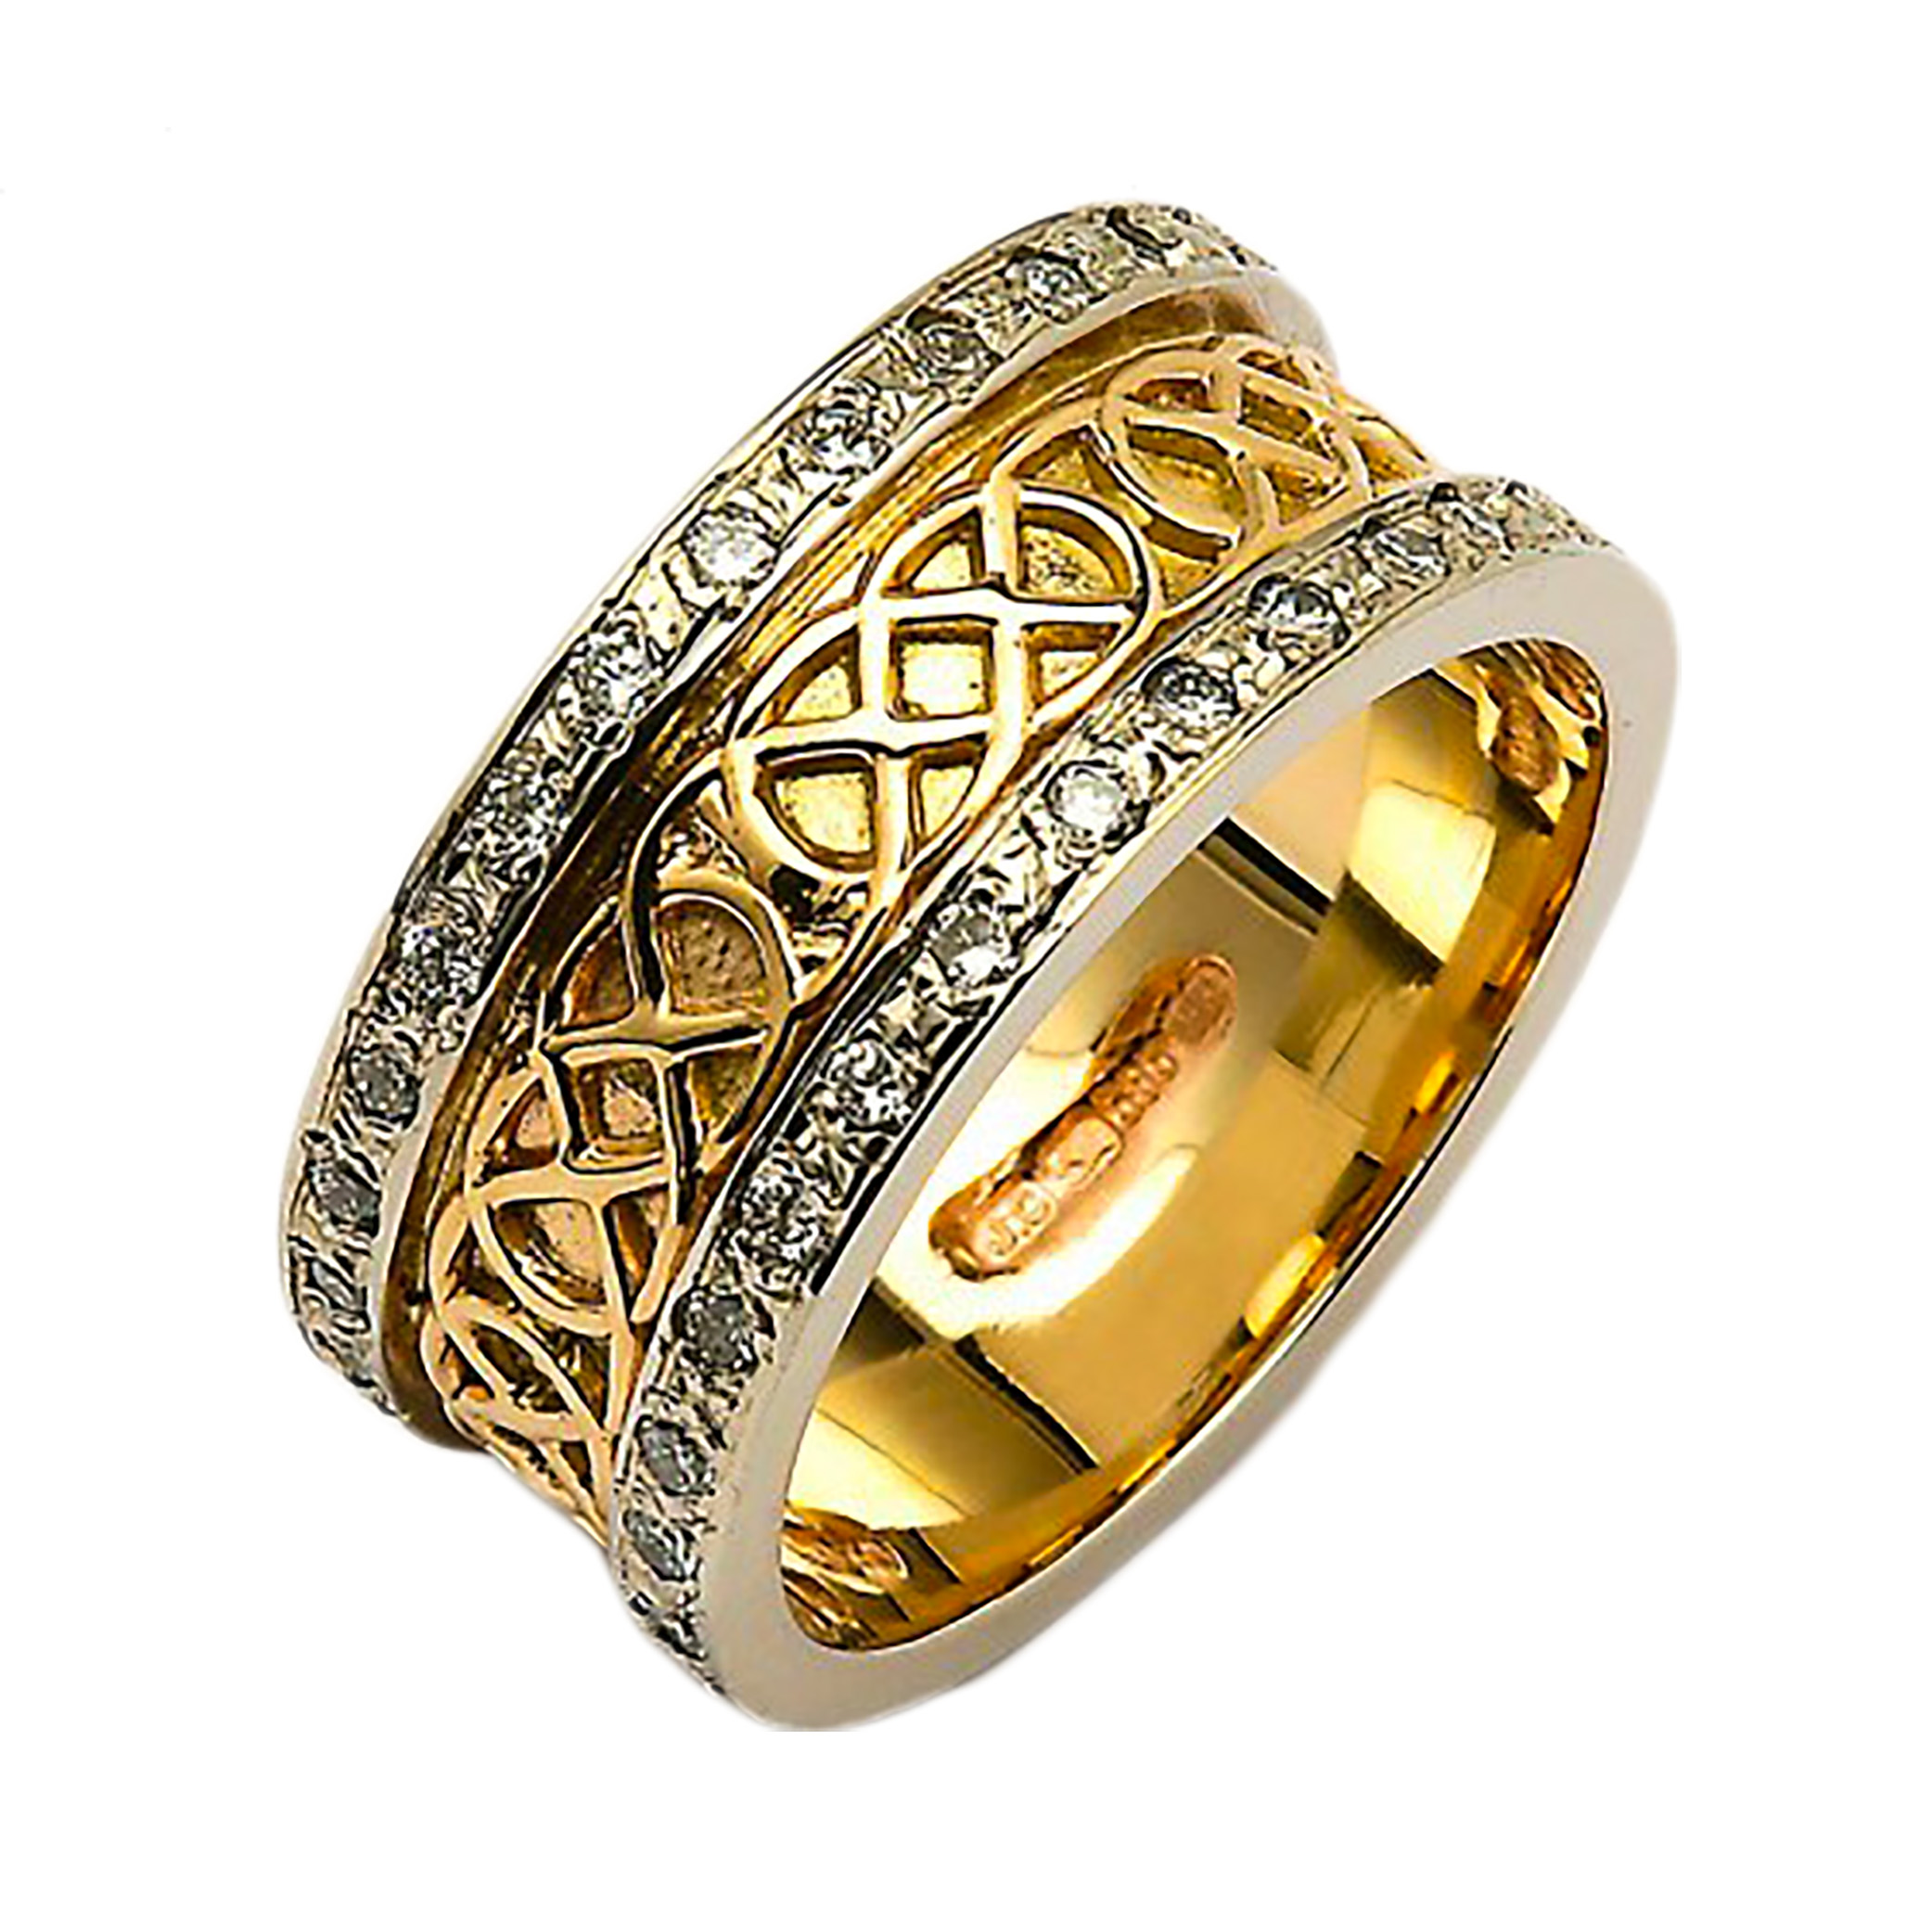 rings yellow round gold campbell products engagement white ireland ring piece dublin halo two diamond jewellers